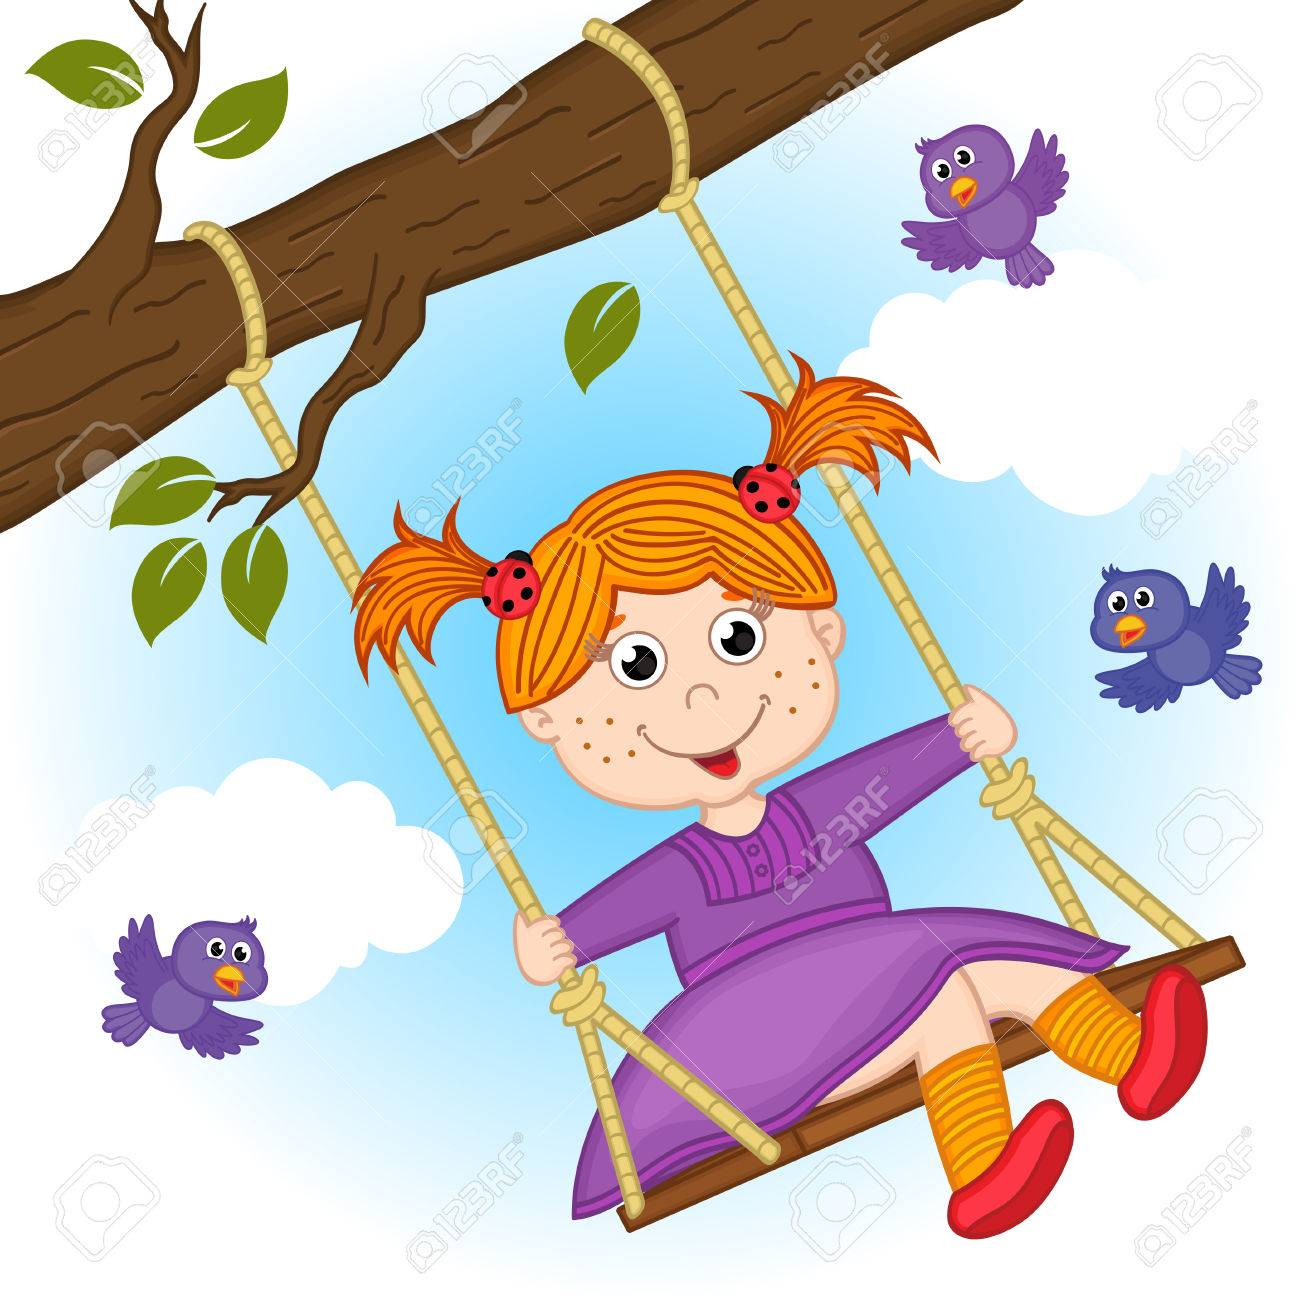 girl on swing on tree branch.